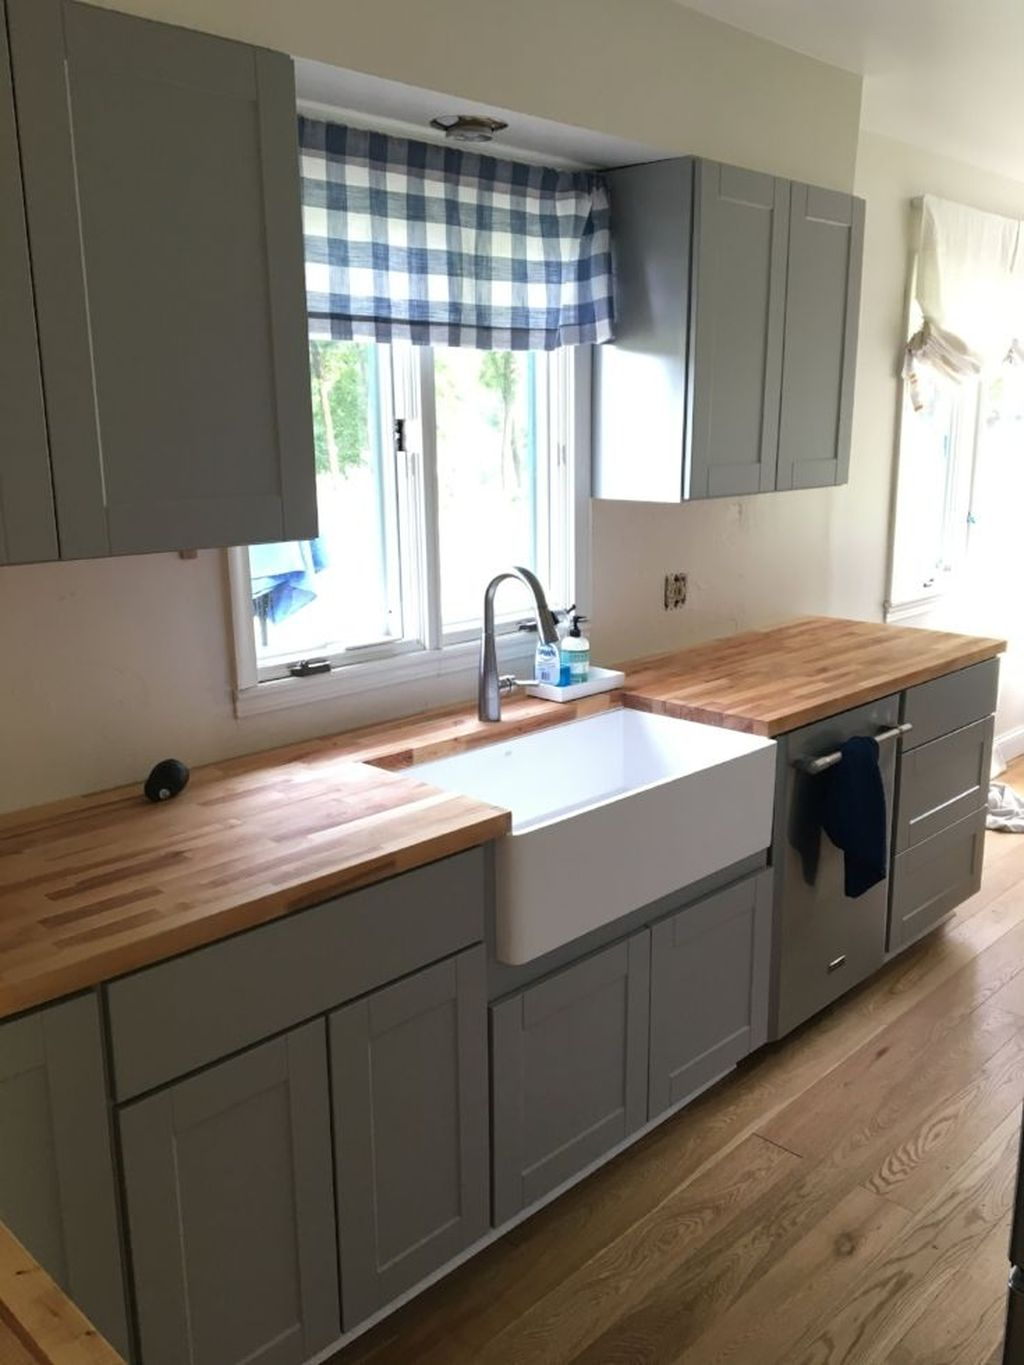 Classy Kitchen Remodeling Ideas On A Budget This Year 25